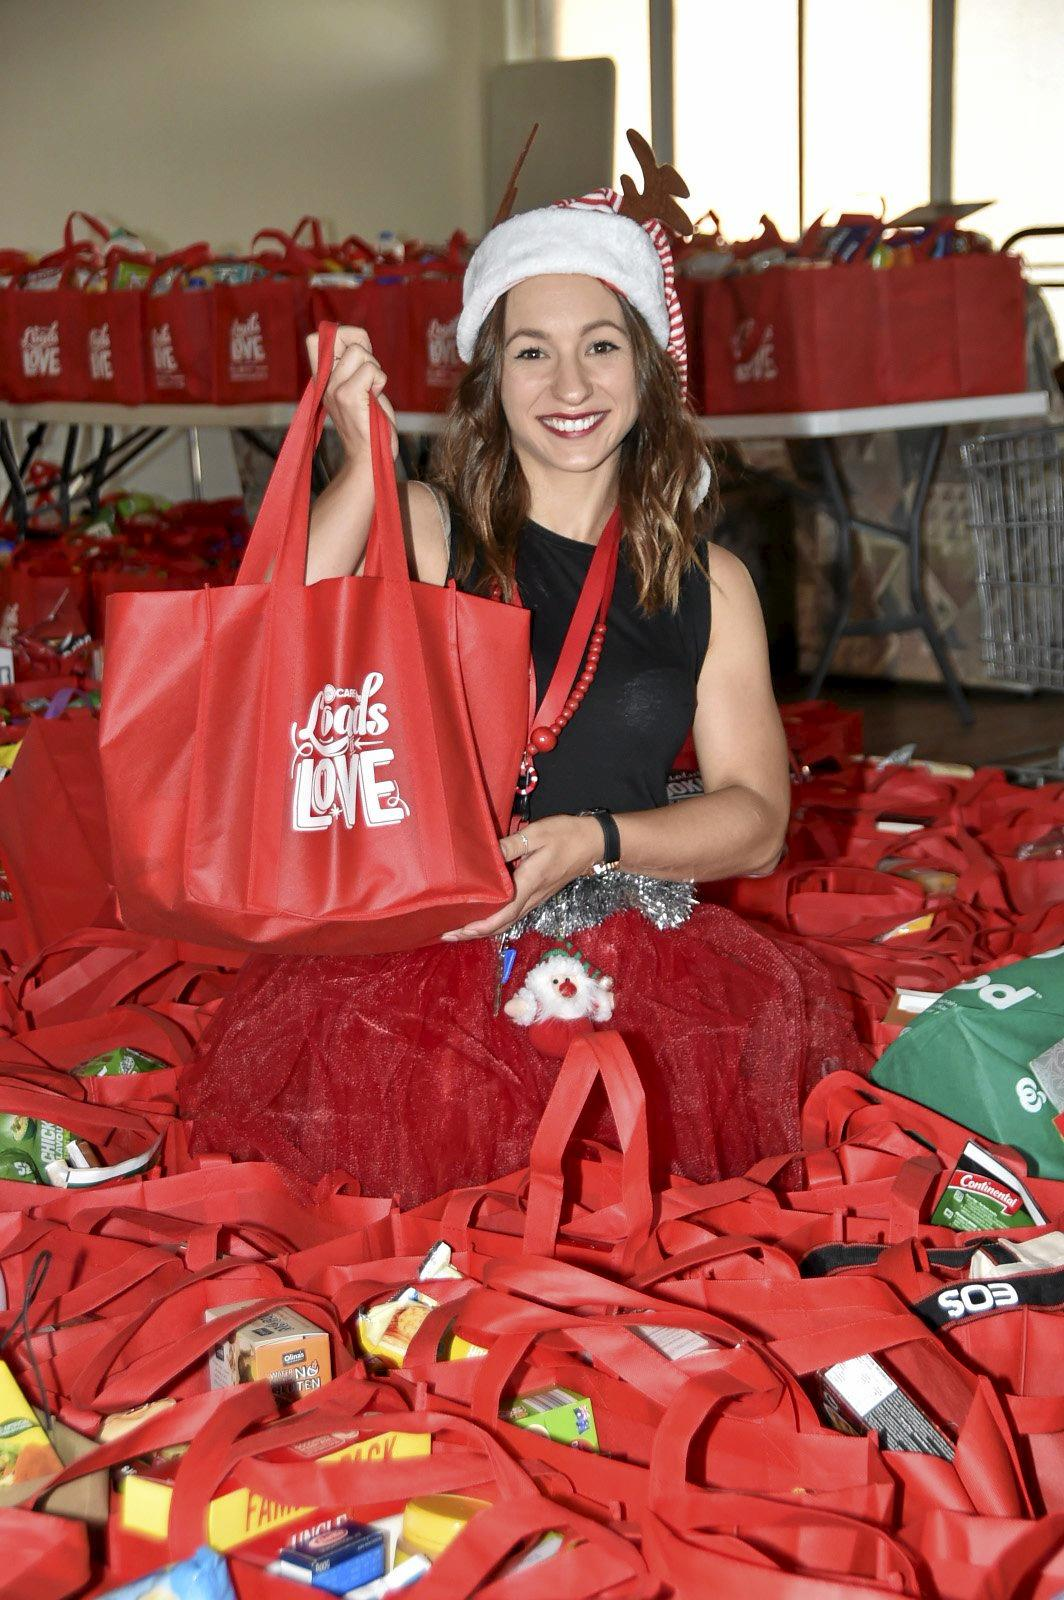 Tabina Russell from Act for Kids amongst the hundreds of groveries bags that will be handed out throughout the day. Loads of Love appeal final day. Lifeline Christmas appeal. December 2018